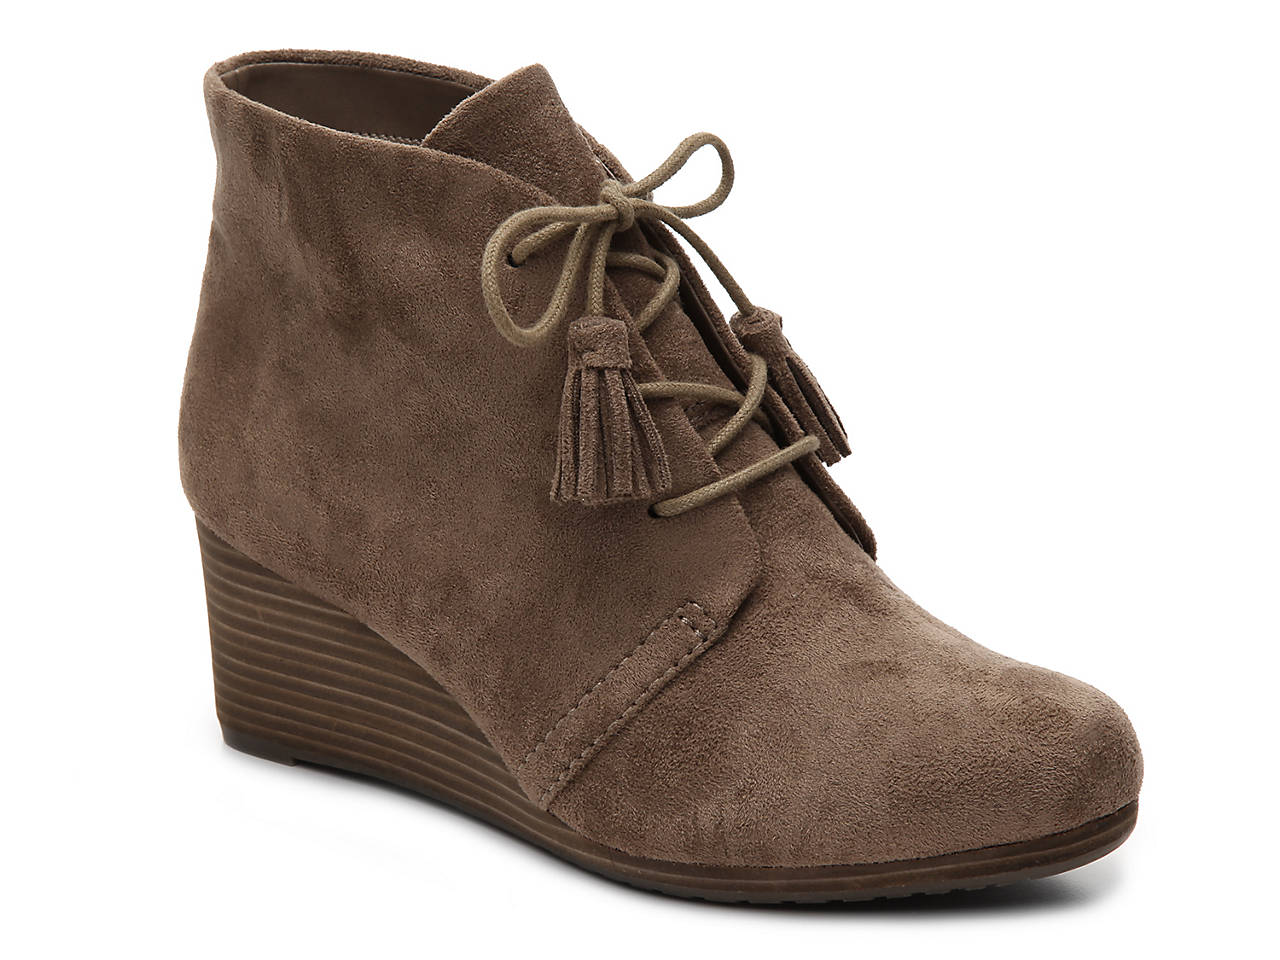 Dakota Wedge Bootie